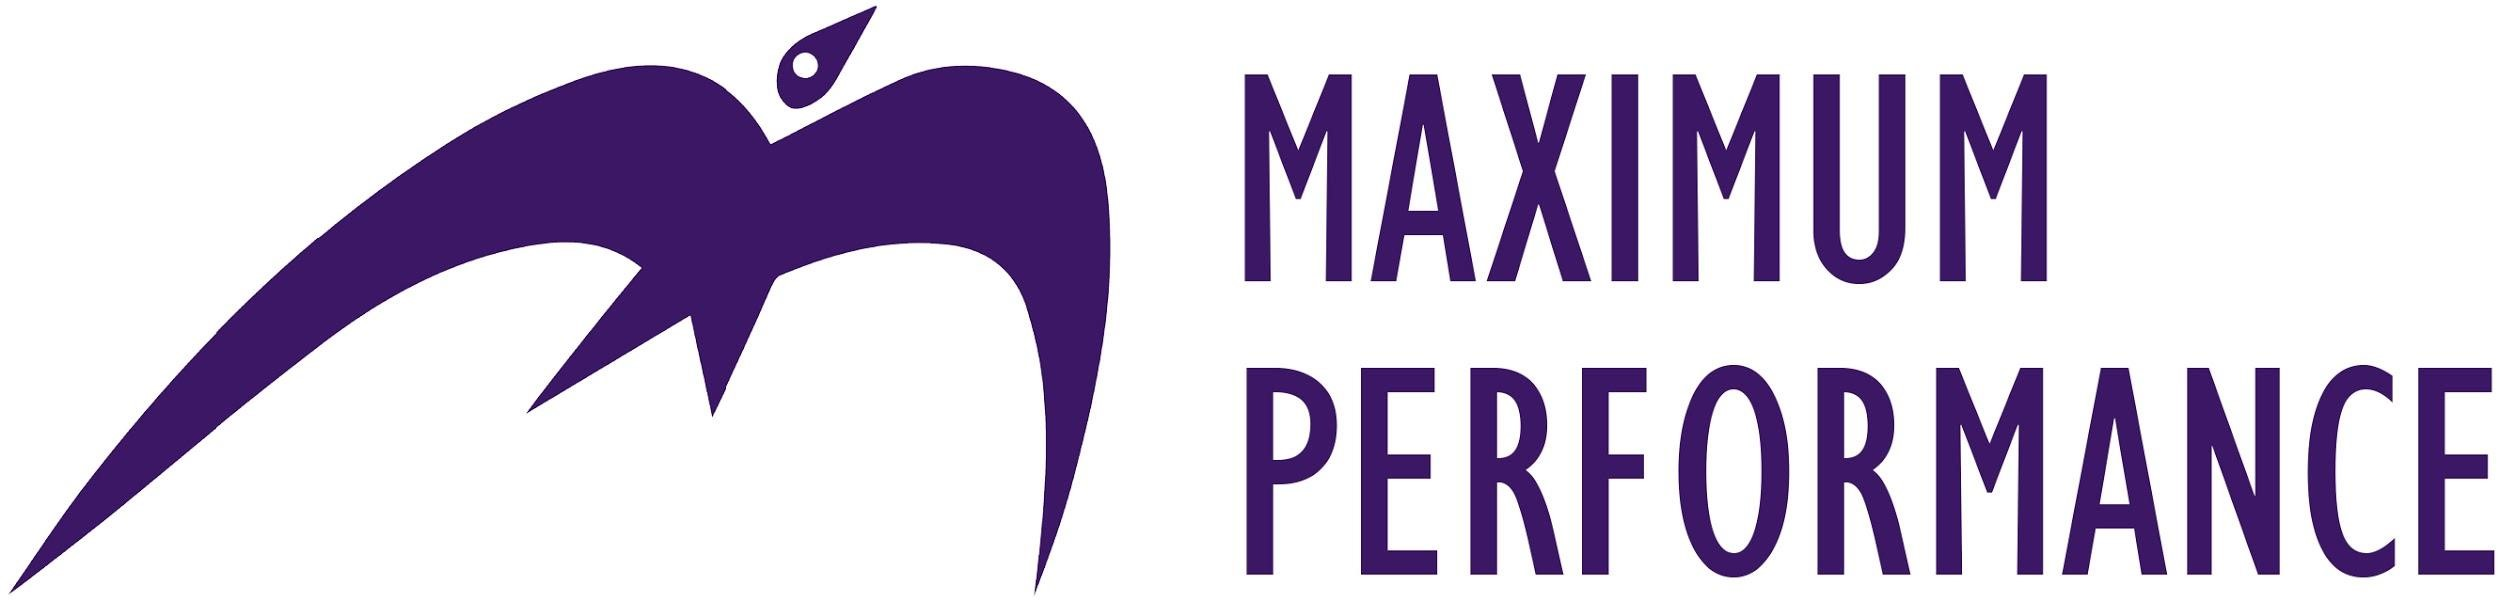 Maximum Performance